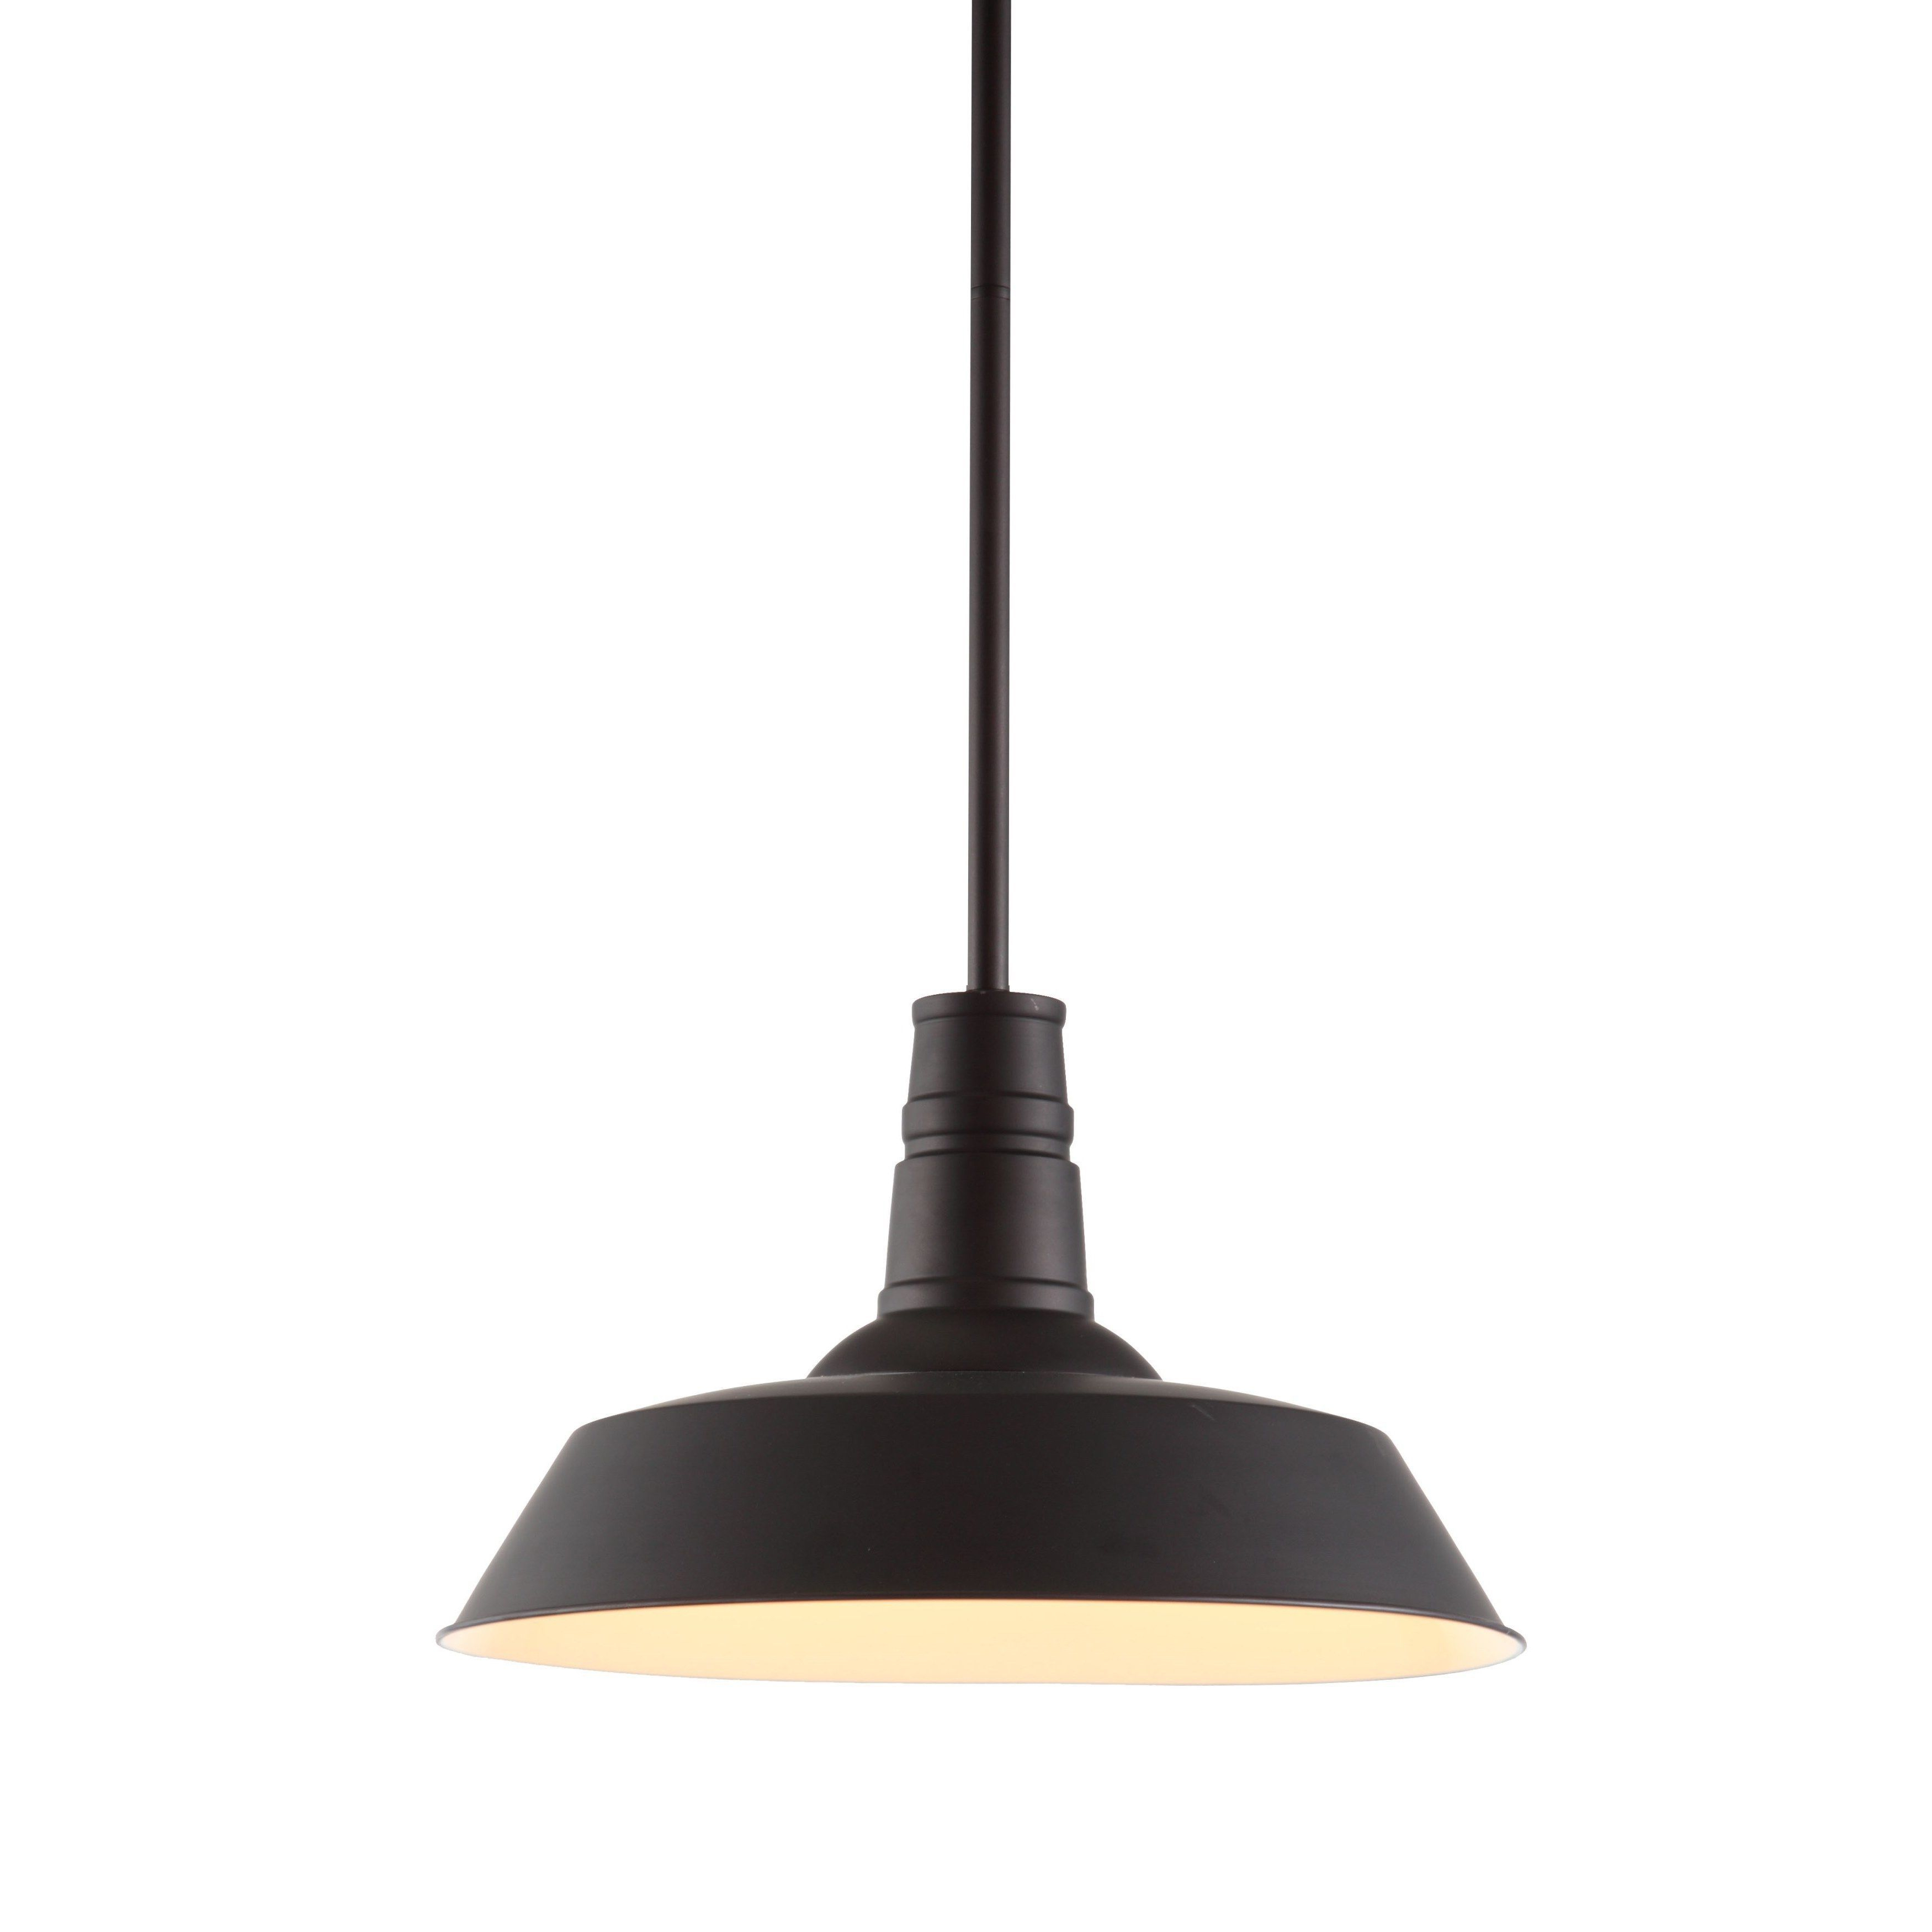 Tin 1 Light Rust Ceiling Lamp In 2019 | Products | Ceiling Within Stetson 1 Light Bowl Pendants (View 28 of 30)